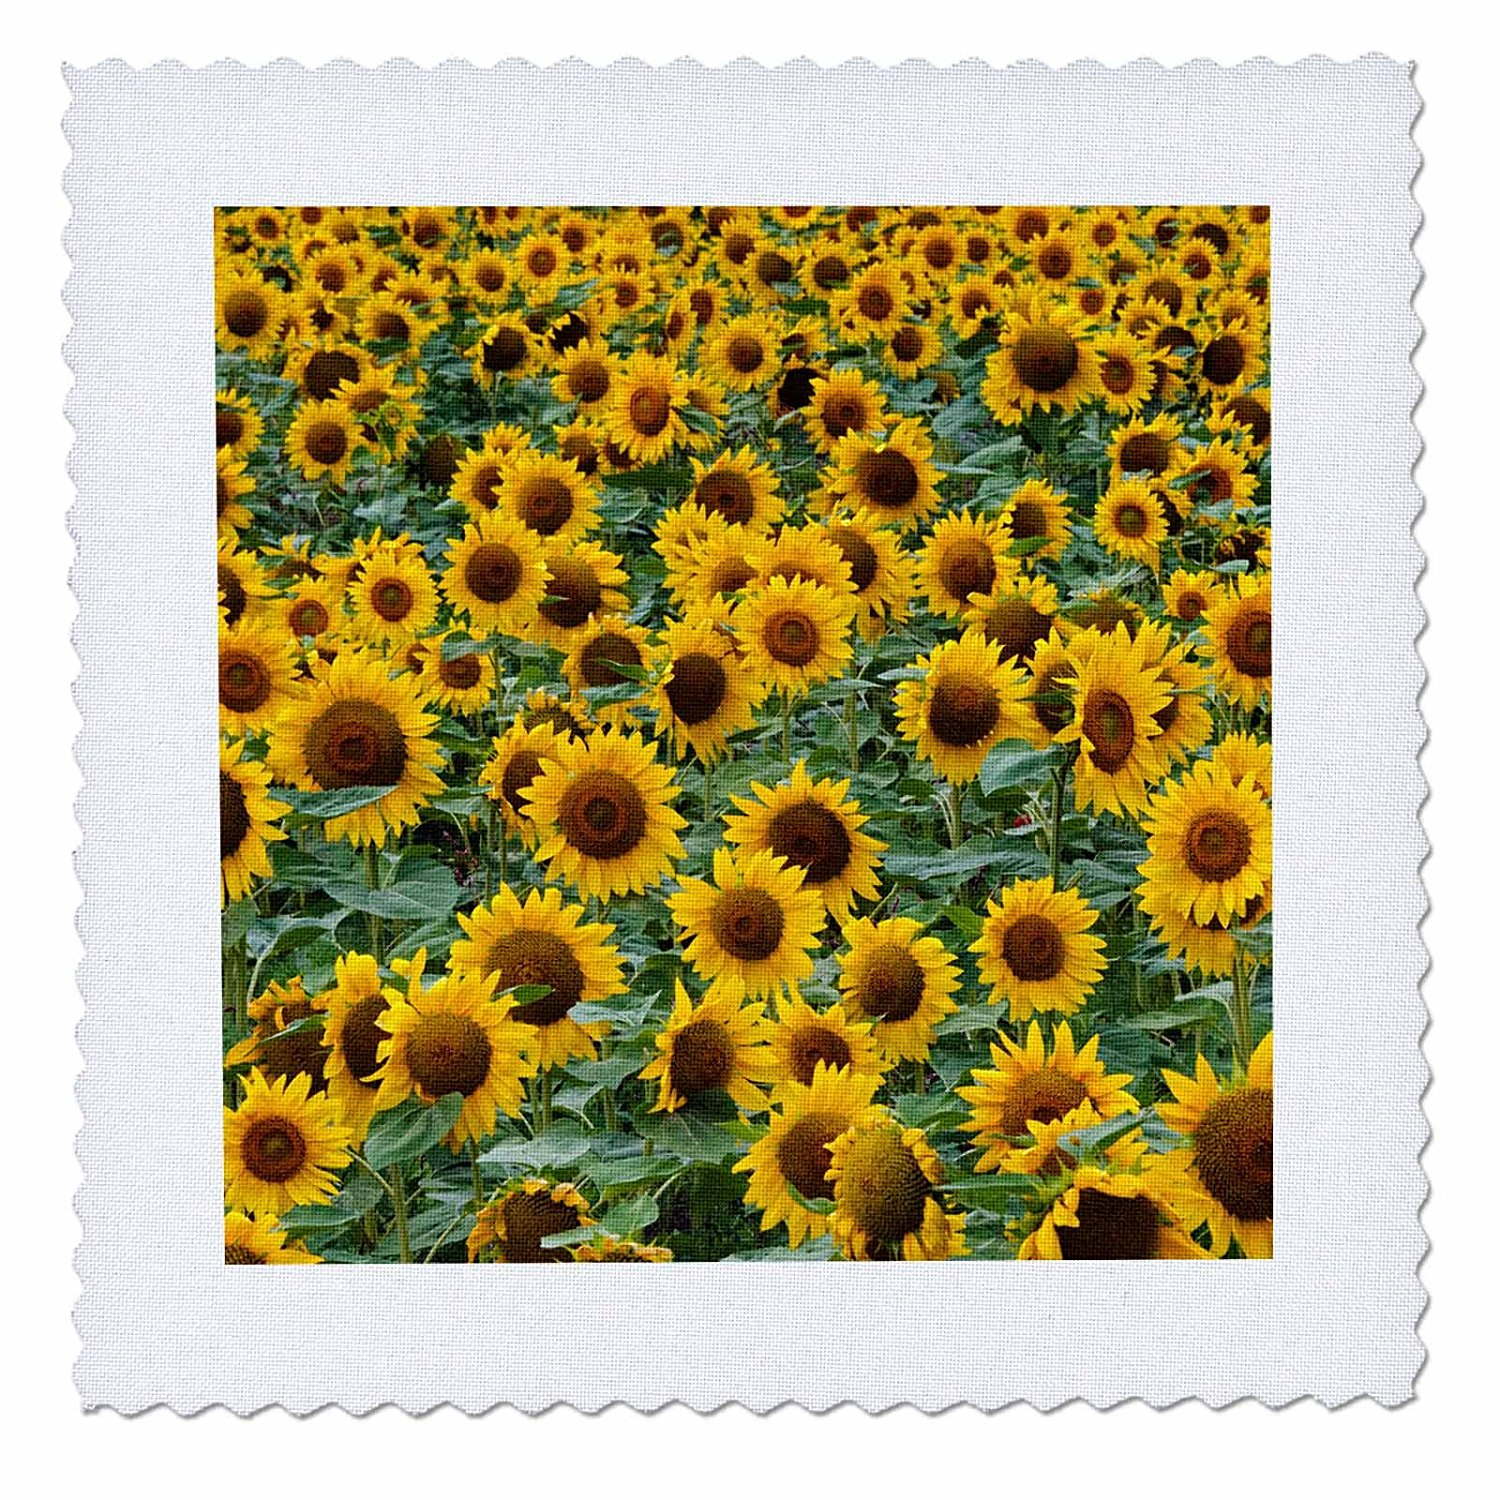 3dRose Danita Delimont - Flowers - Sunflowers in the flower farm, Furano, Hokkaido Prefecture, Japan - 22x22 inch quilt square (qs_276891_9)